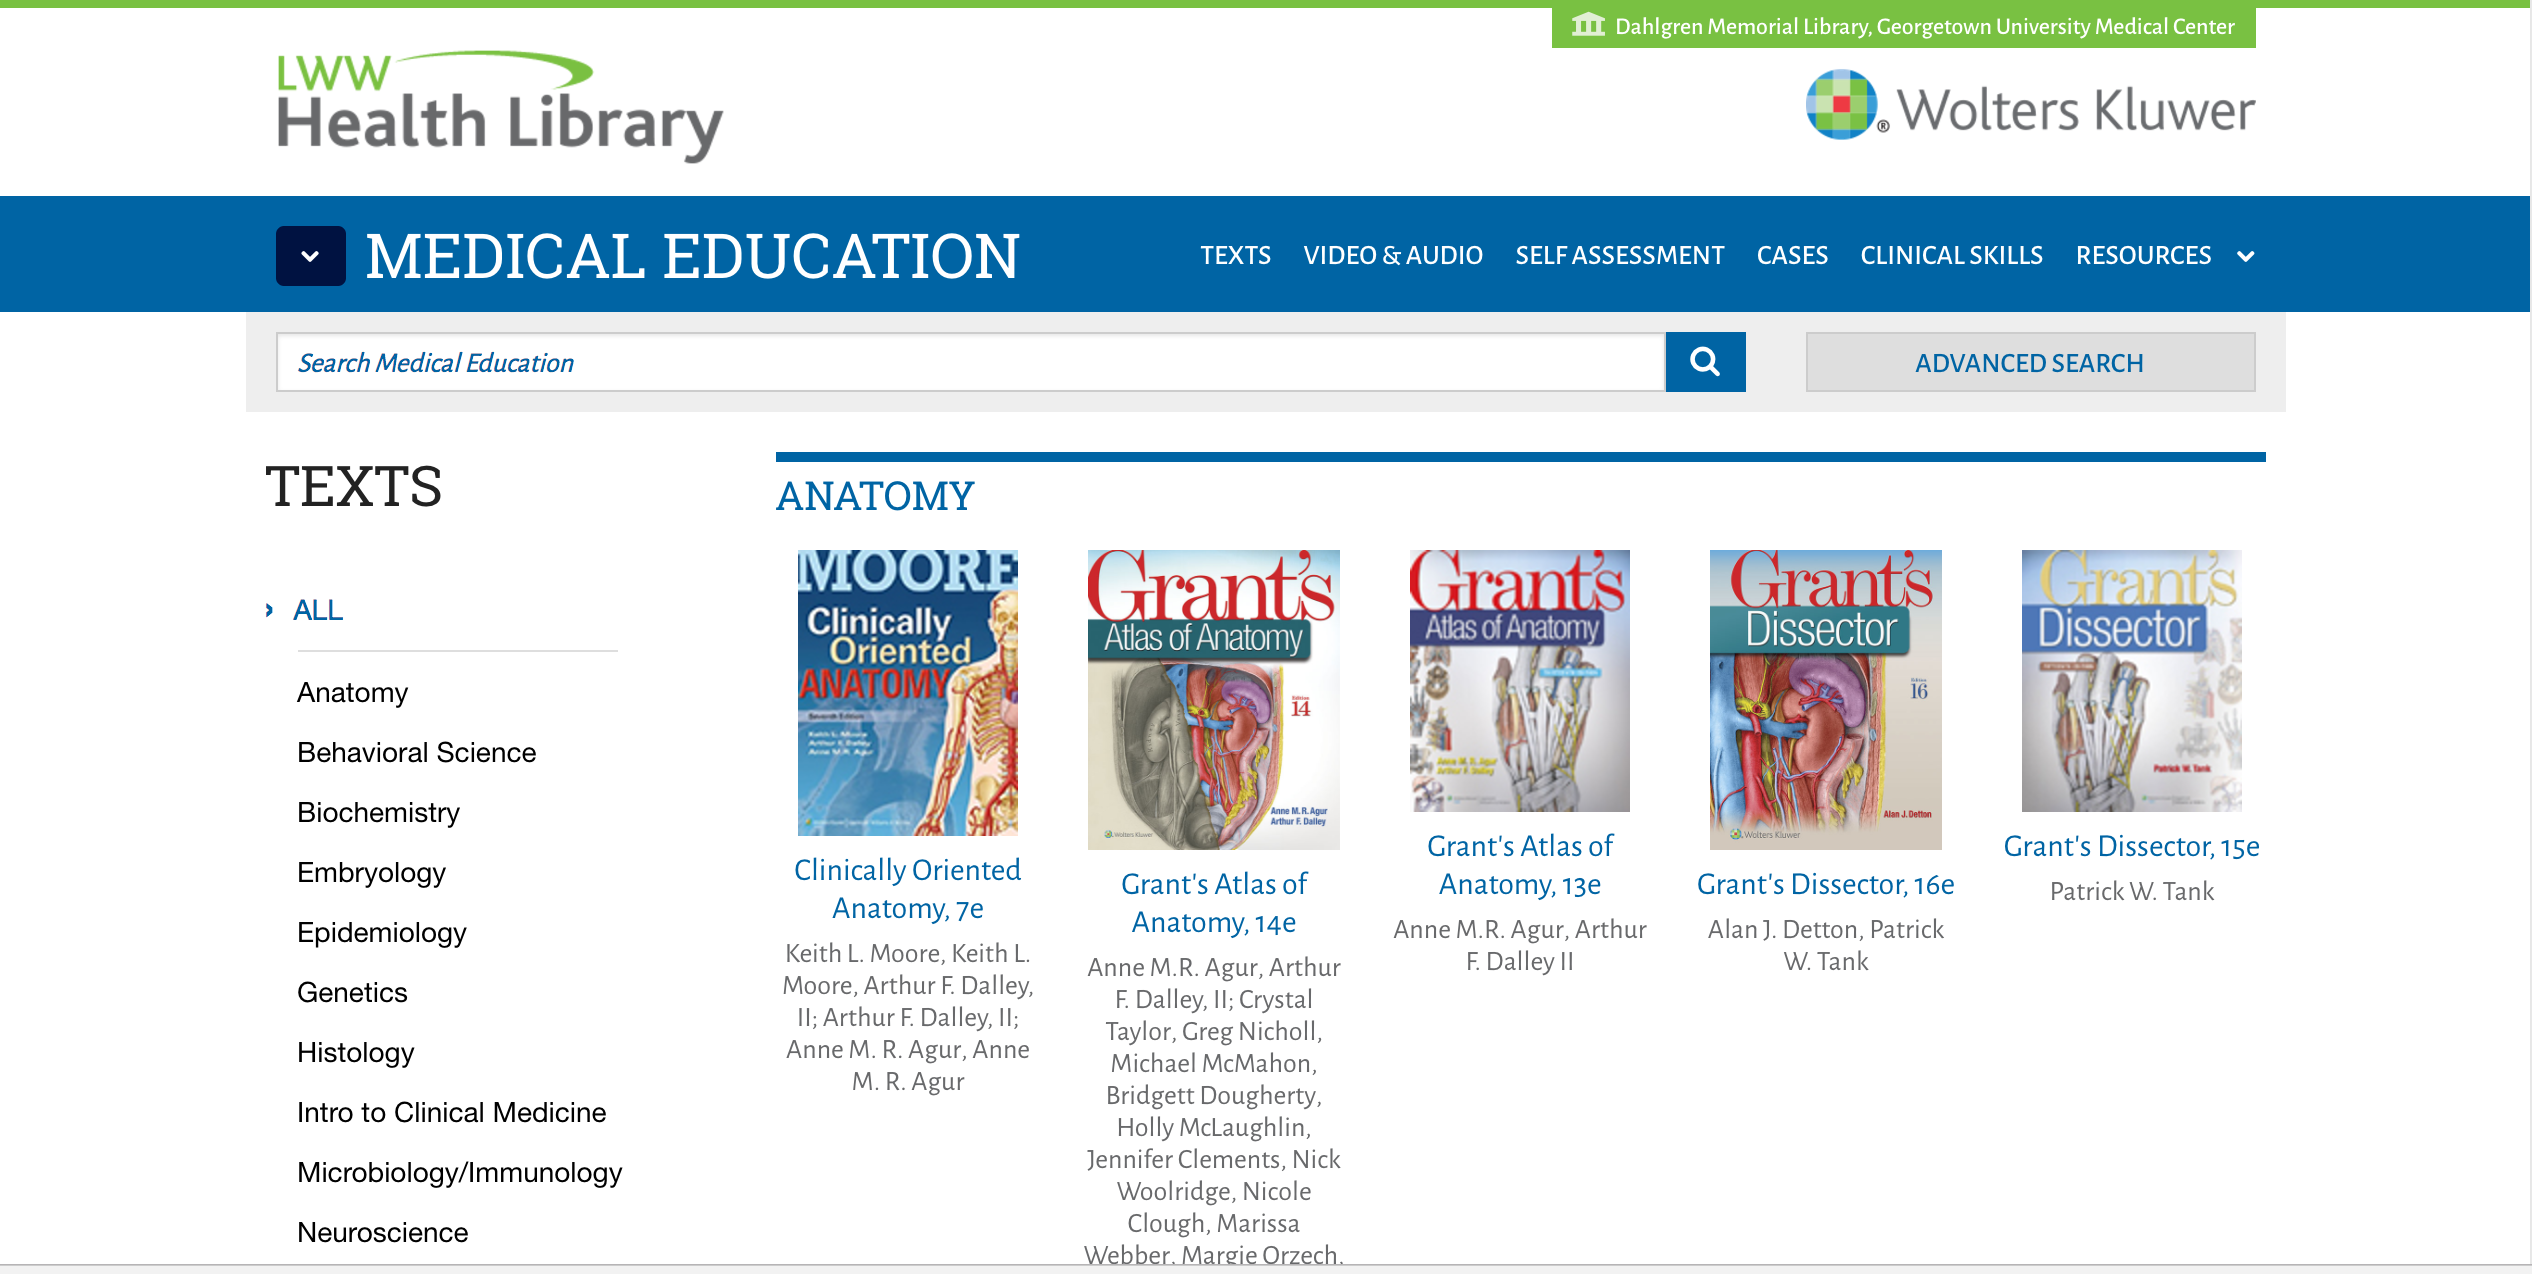 Search for an eBook from the lWW Health Library